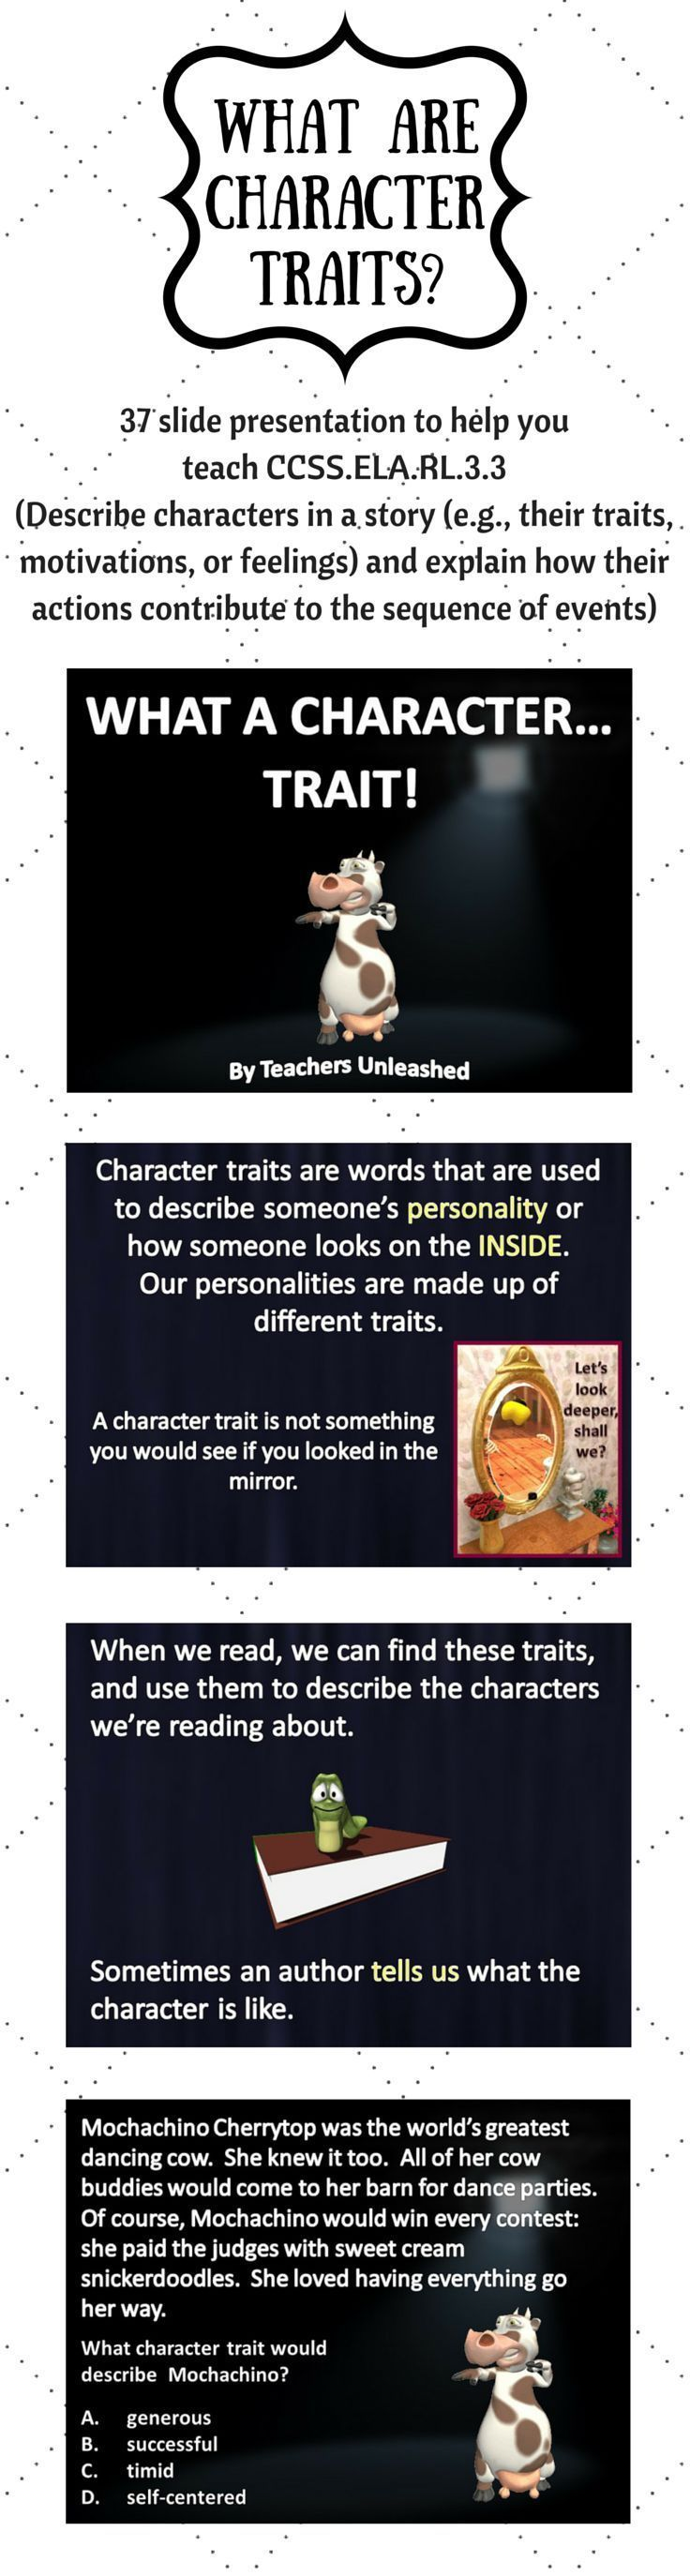 Character Traits Introduction PowerPoint Lesson. Explains how authors develop character traits, and how to draw inferences based on text clues.  CCSS.ELA.RL.3.3